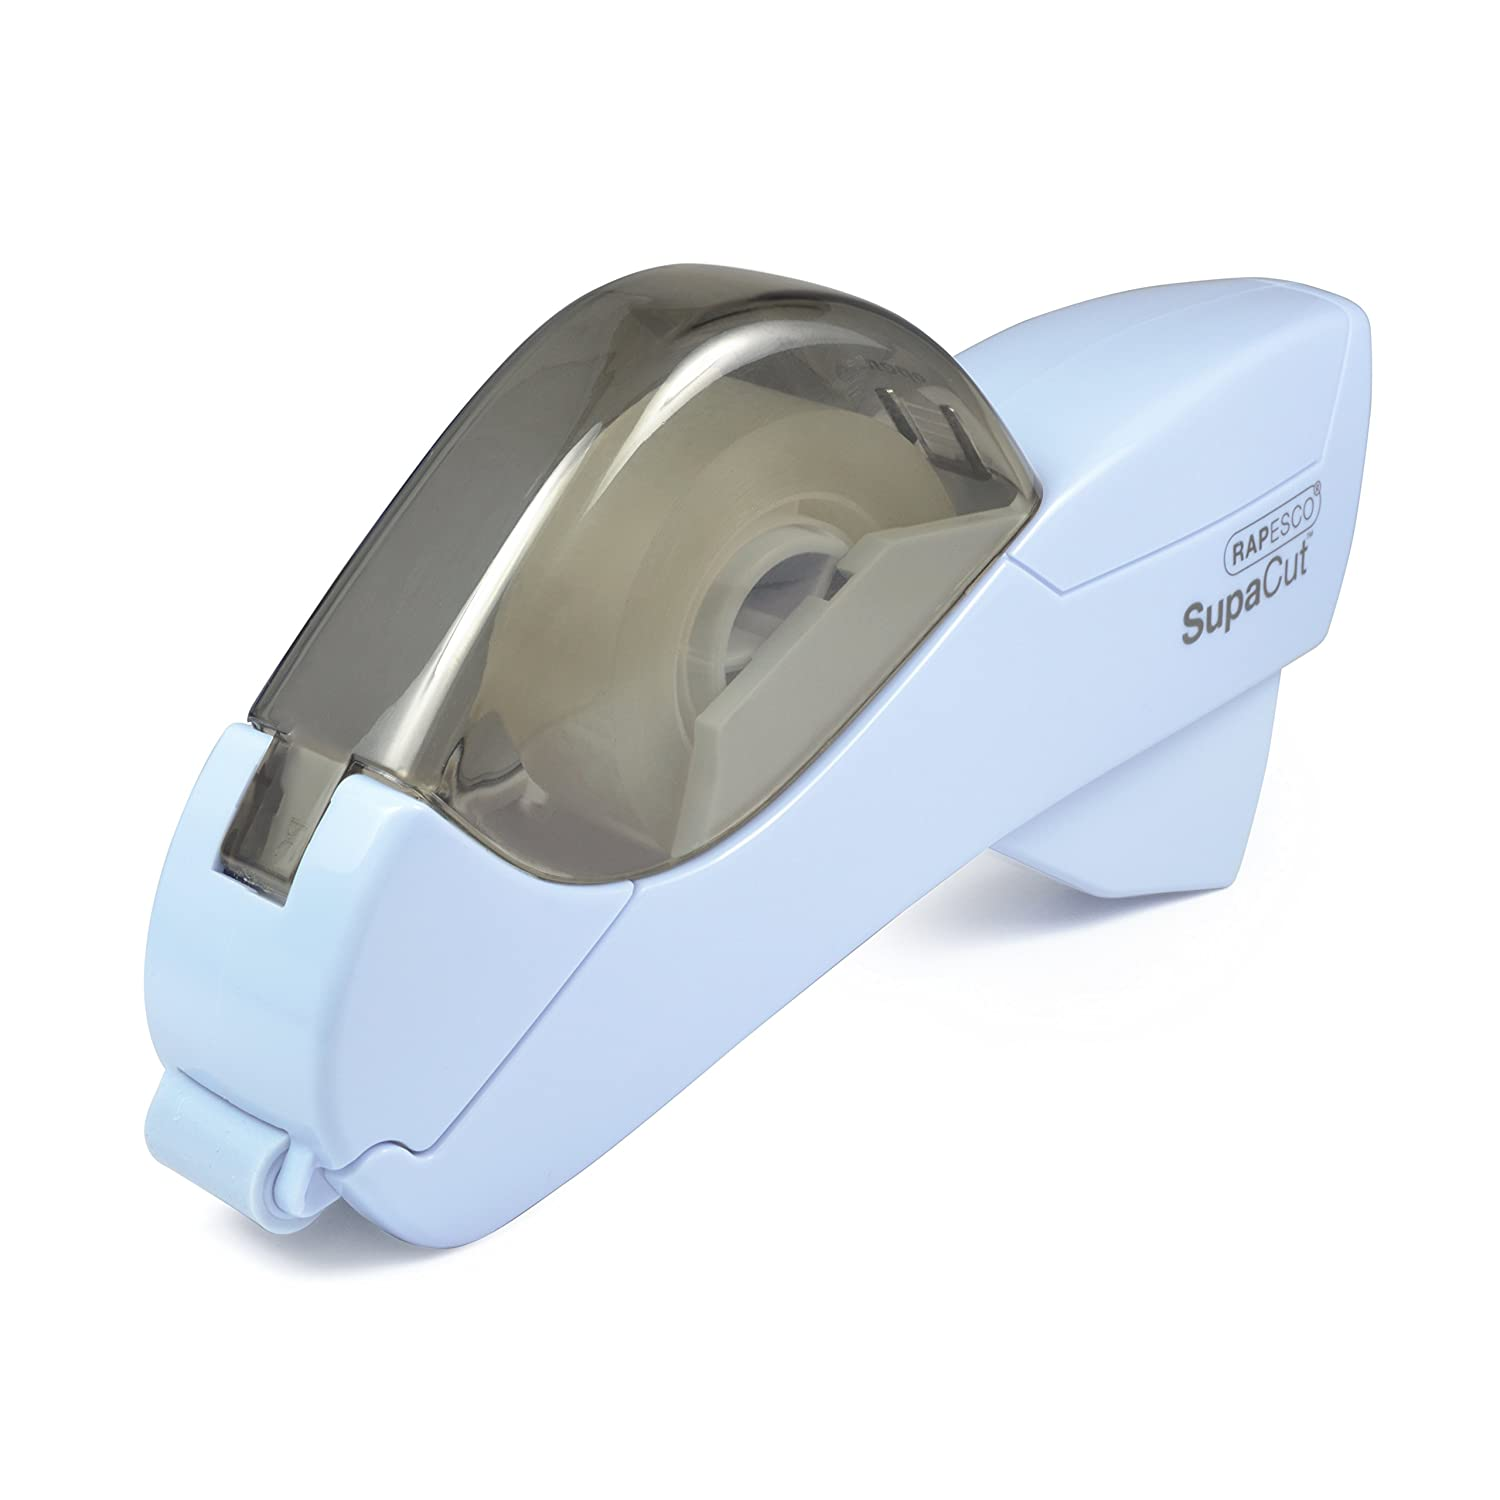 Amazon.com : Rapesco 1442 SupaCut Tape Dispenser with 2 Tape Rolls - Powder Blue : Office Products